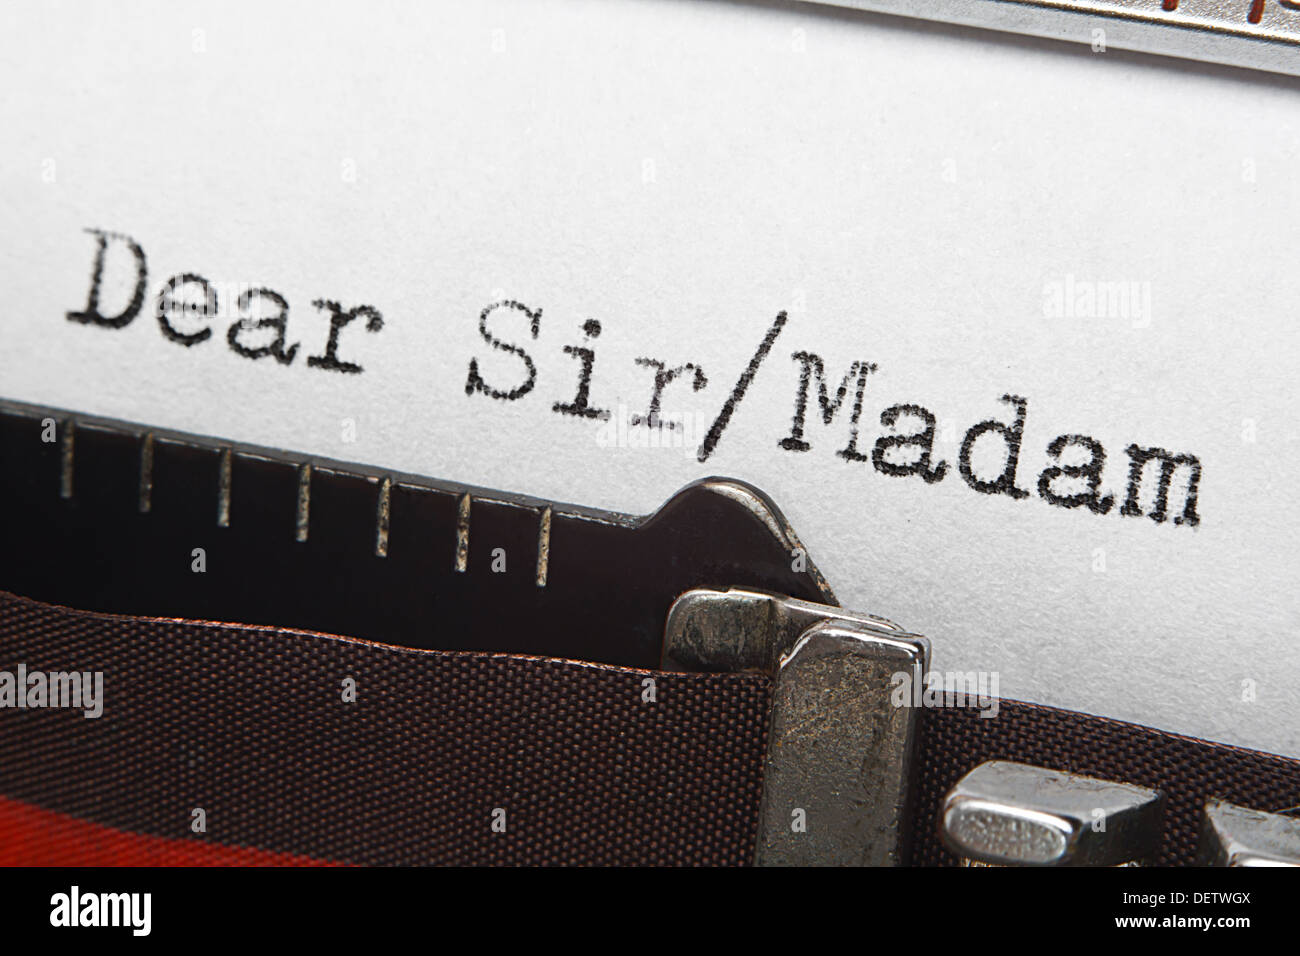 Old retro typewriter letter introduction or greeting dear sirmadam old retro typewriter letter introduction or greeting dear sirmadam great concept for formal letter writing m4hsunfo